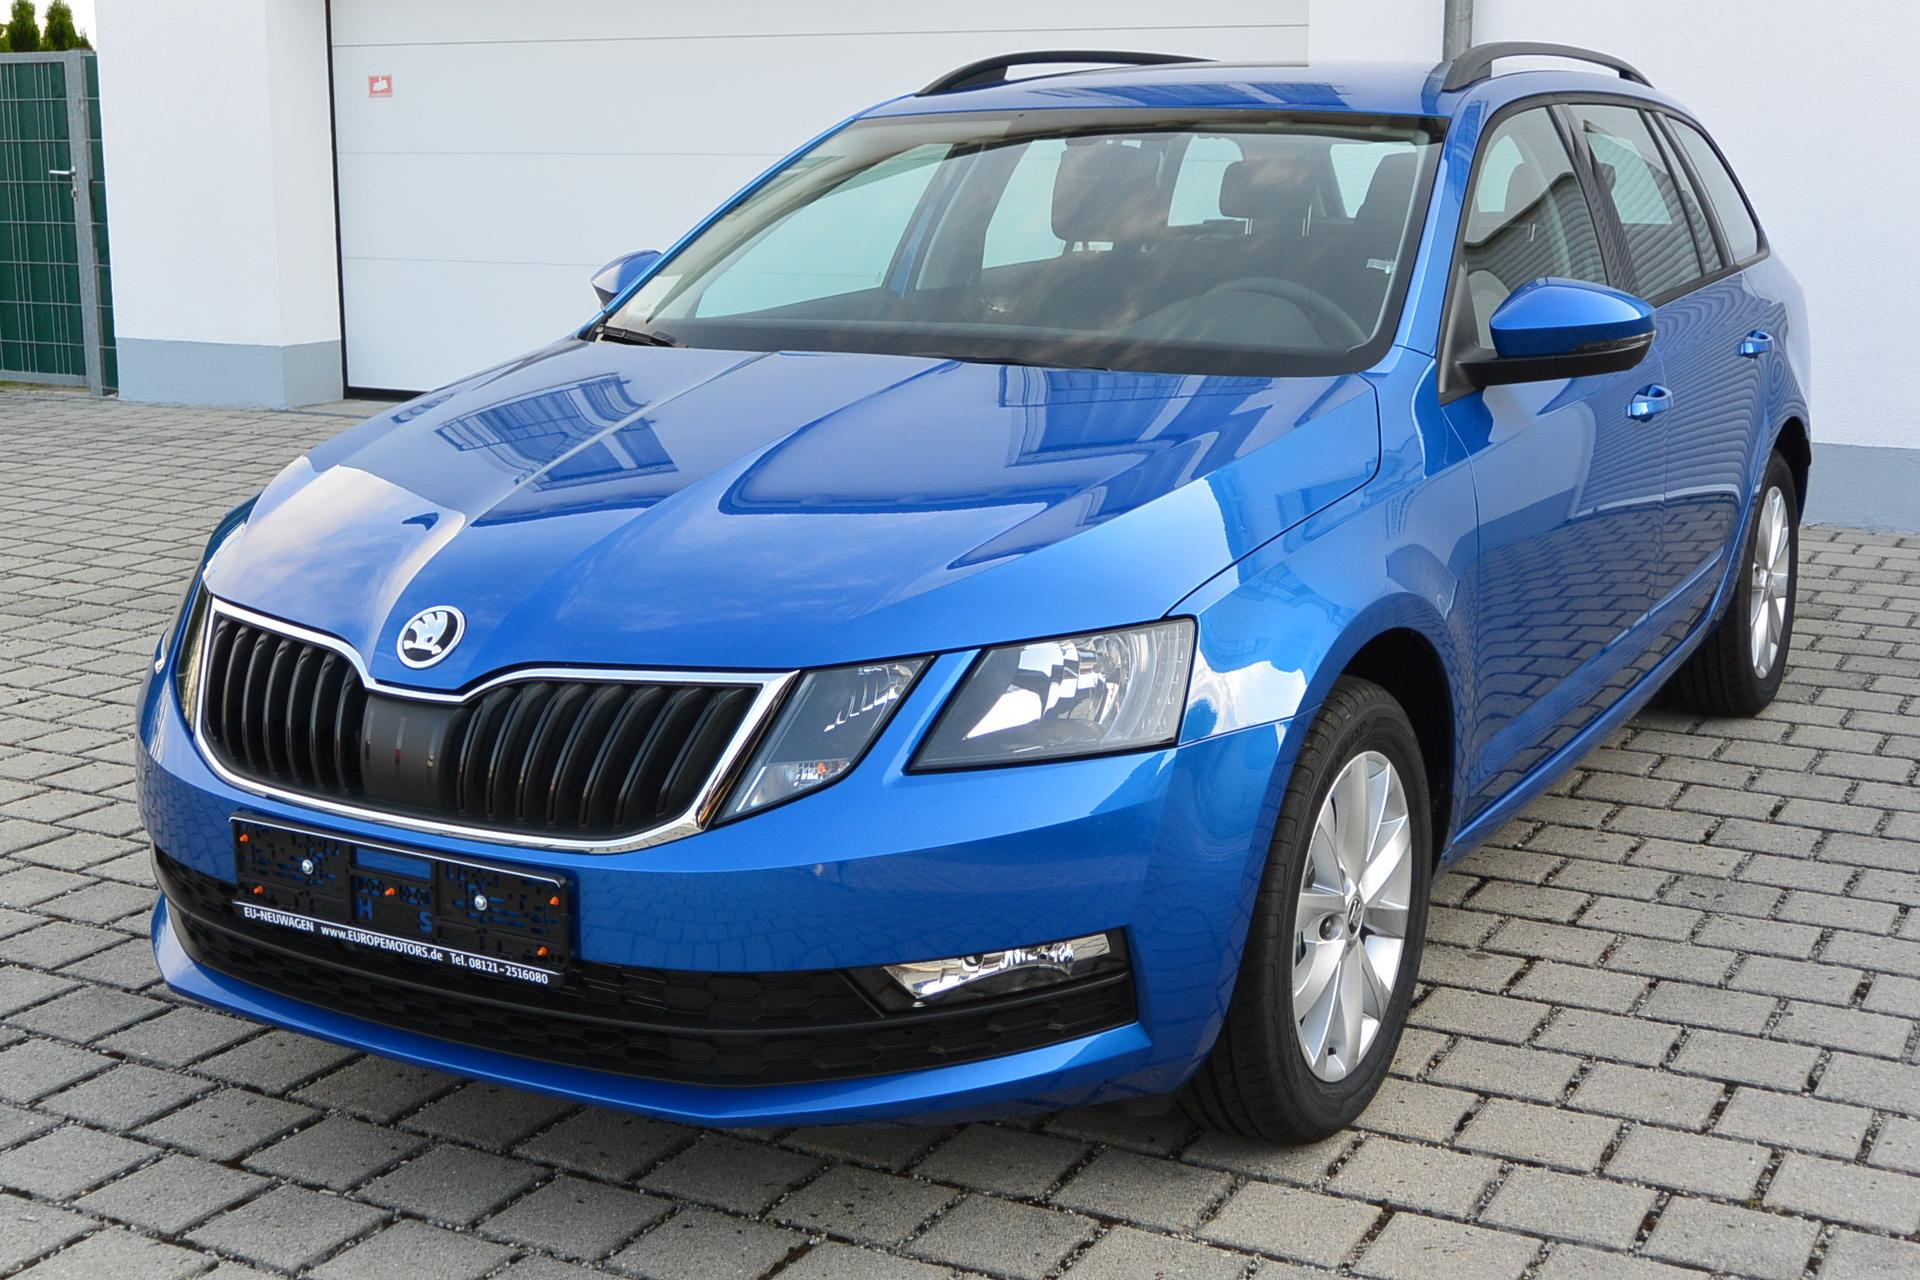 skoda octavia combi ambition 2 0 tsi dsg 140 kw 190 ps automatik reimport eu neuwagen zum. Black Bedroom Furniture Sets. Home Design Ideas